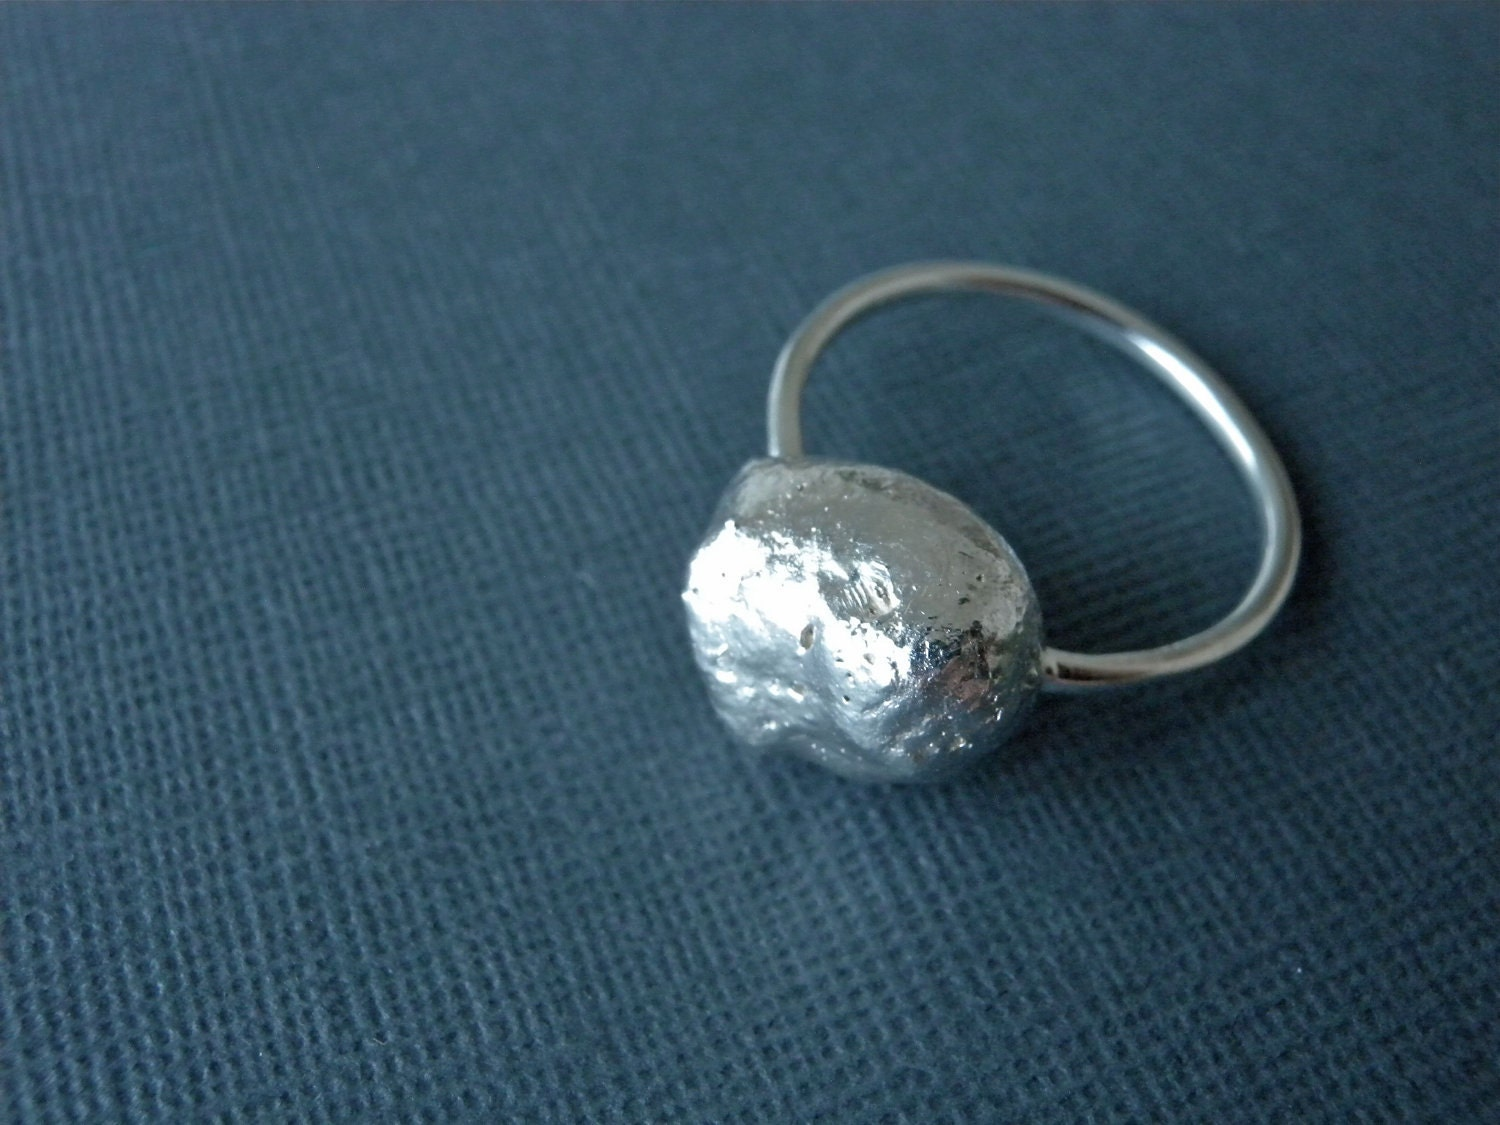 Comet Organic Silver Ring Unique Solid Sterling by ChristianJessie from etsy.com